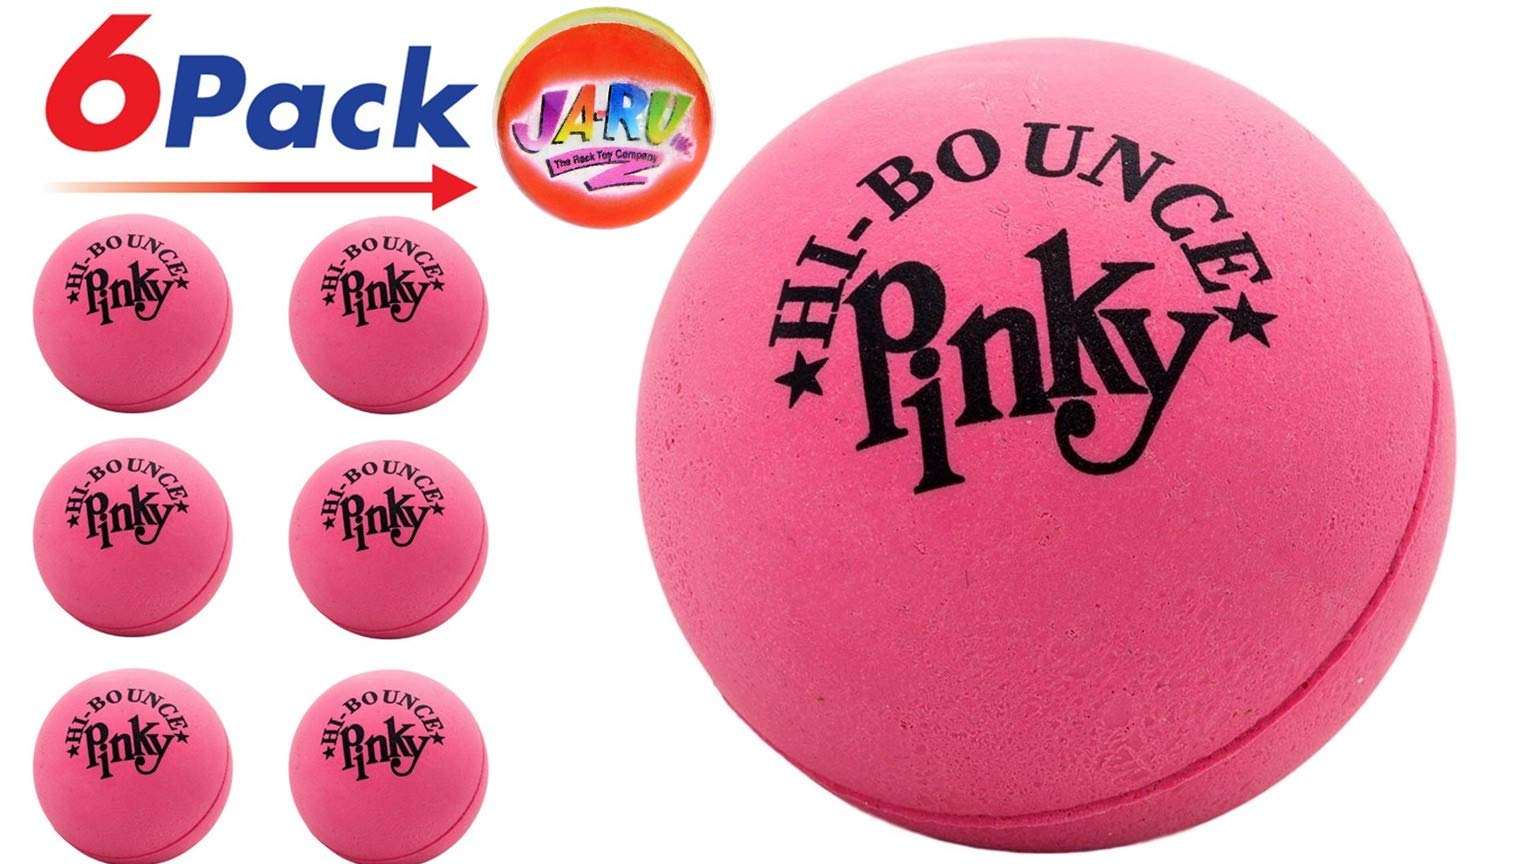 Pinky Ball (Pack of 6) 2.5'' Hi Bounce Large Pink Rubber Balls for Play or Massage Therapy. Plus 1 Small JA-RU Ball. #976-6p by JaRu